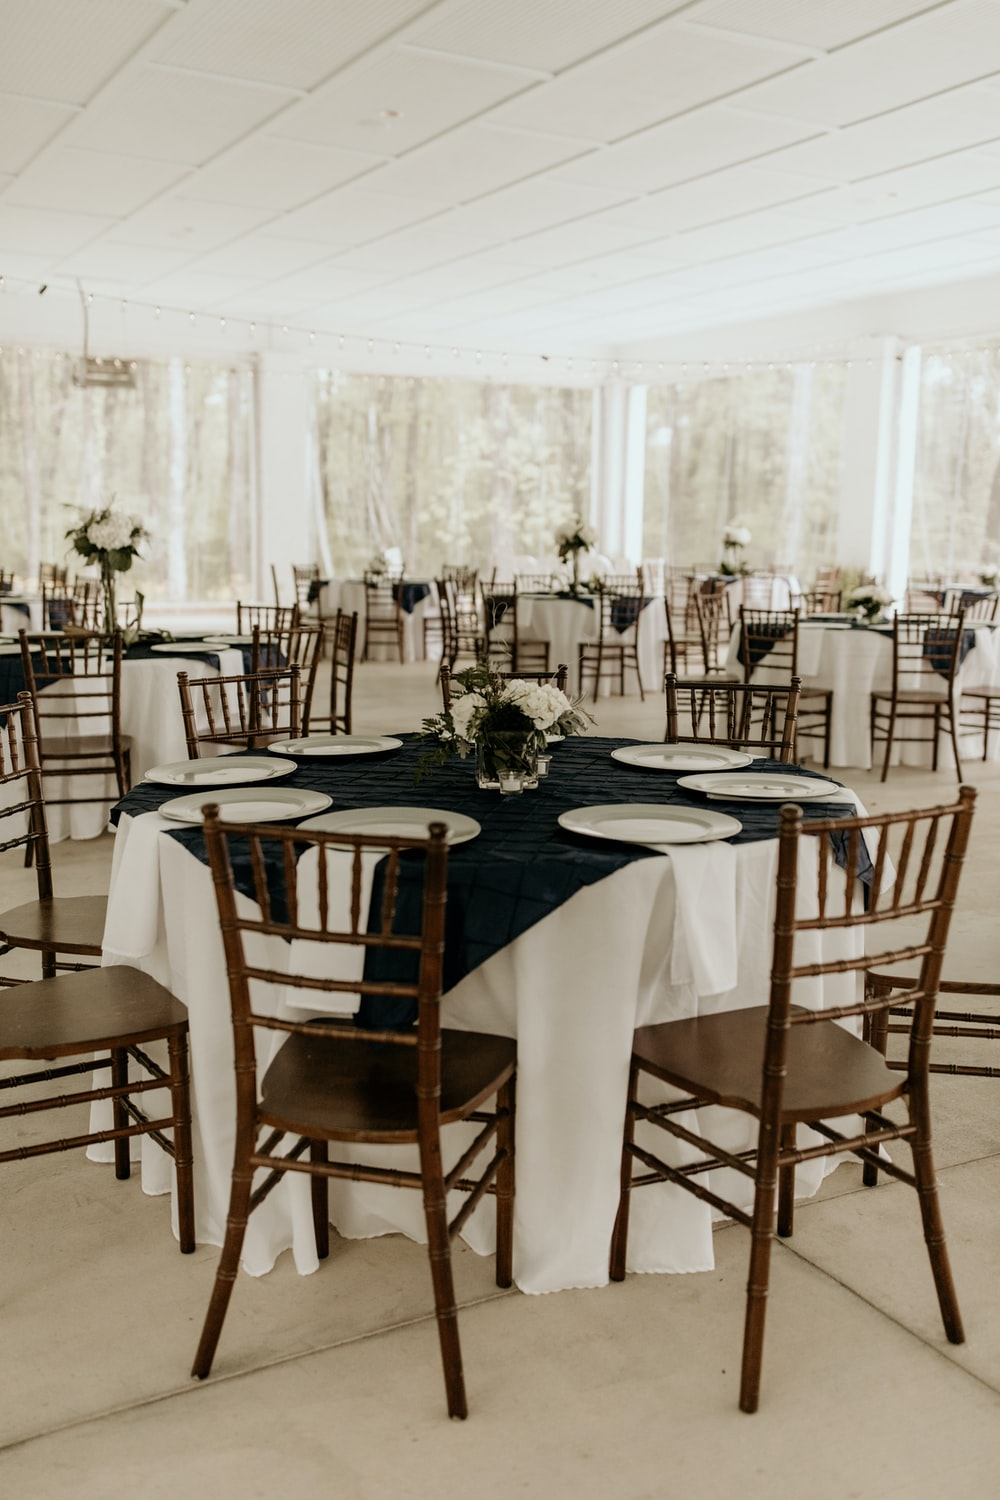 white table with chairs and table